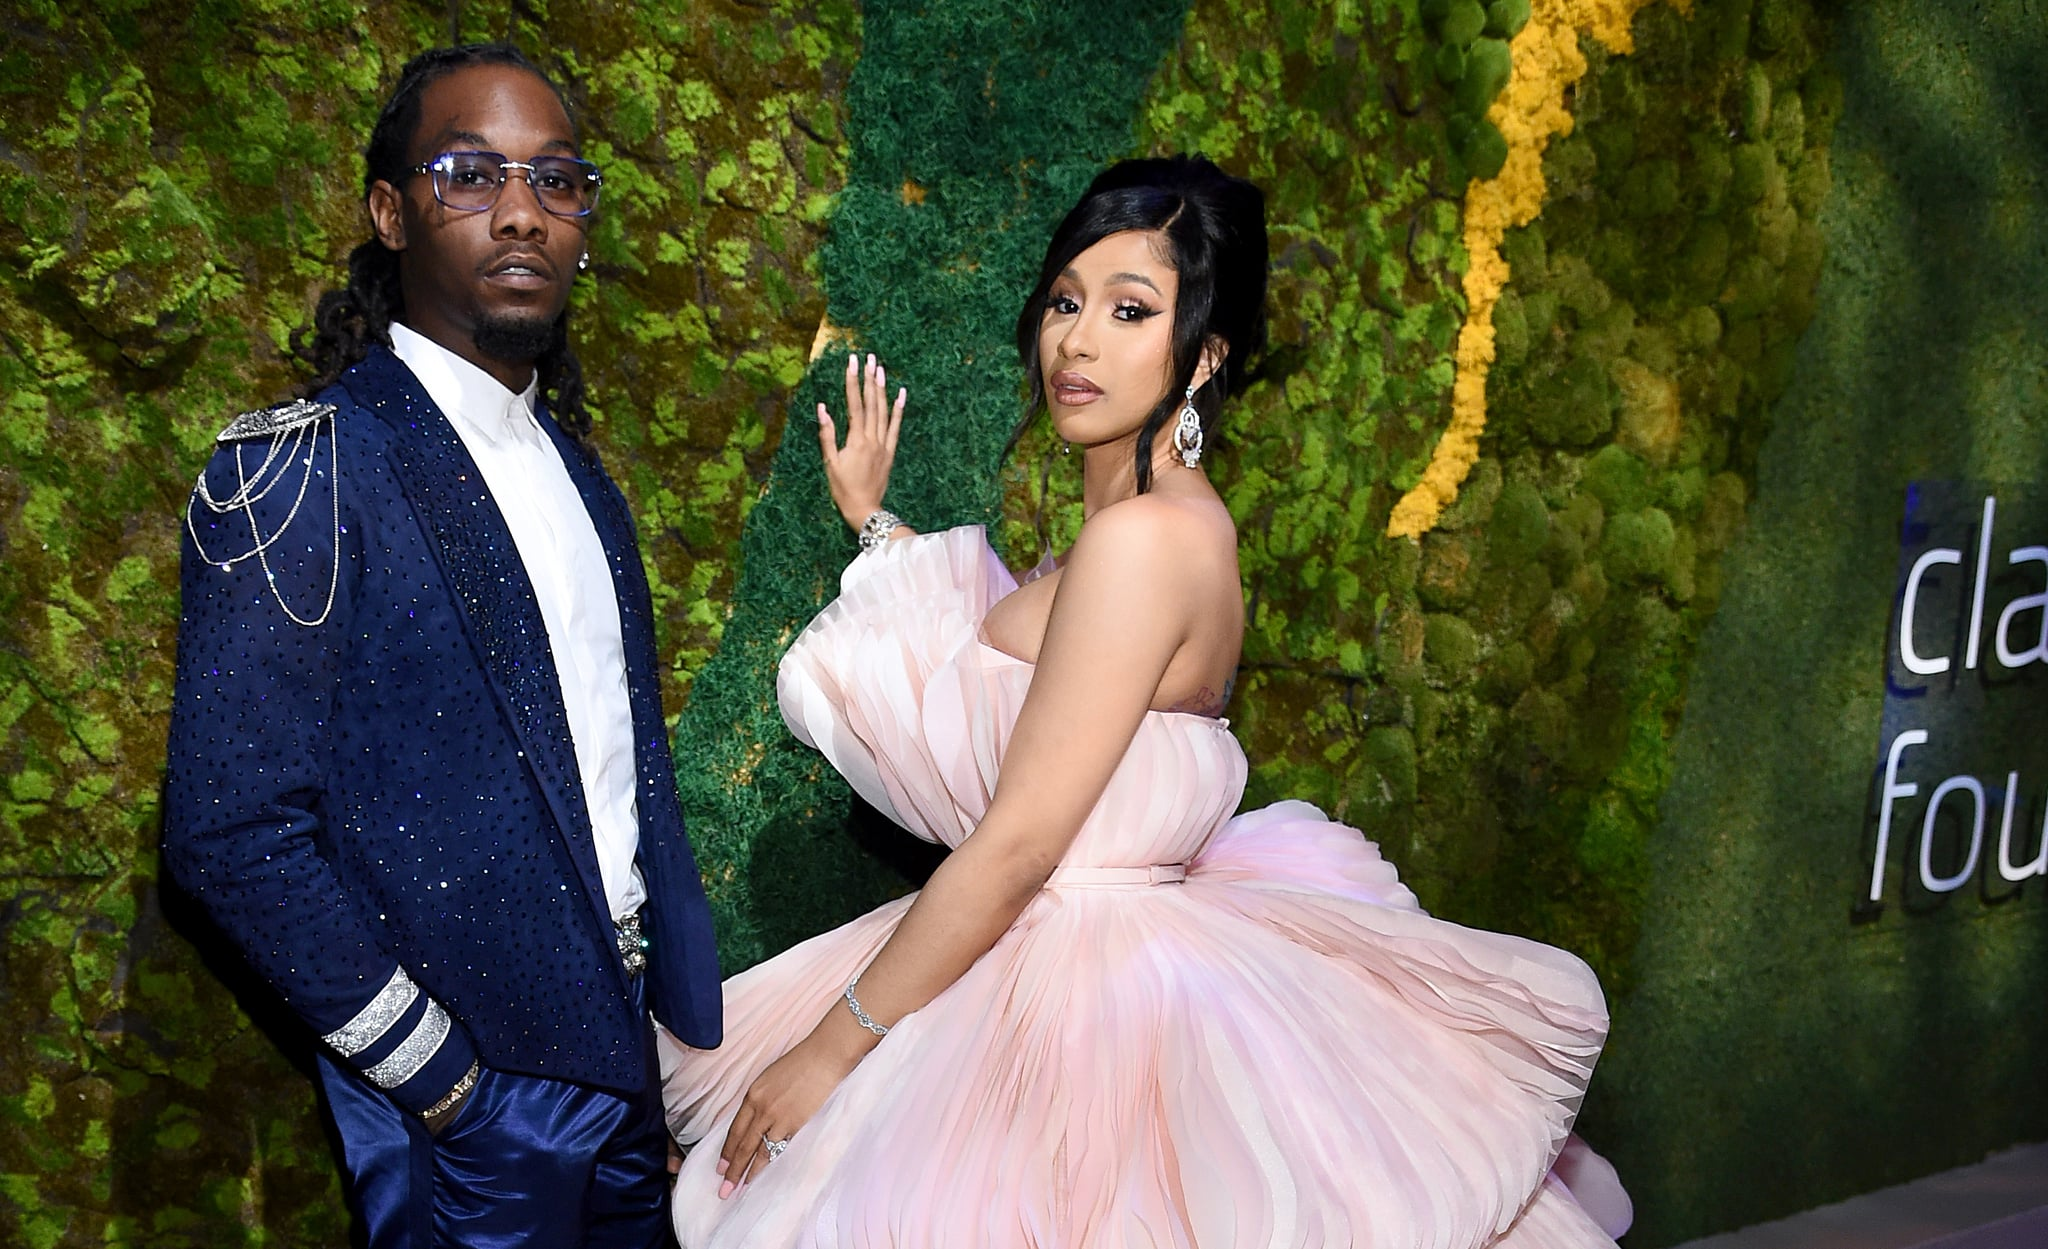 Cardi B and Offset:Rapper Shares Cute Baby Picture From The Hospital